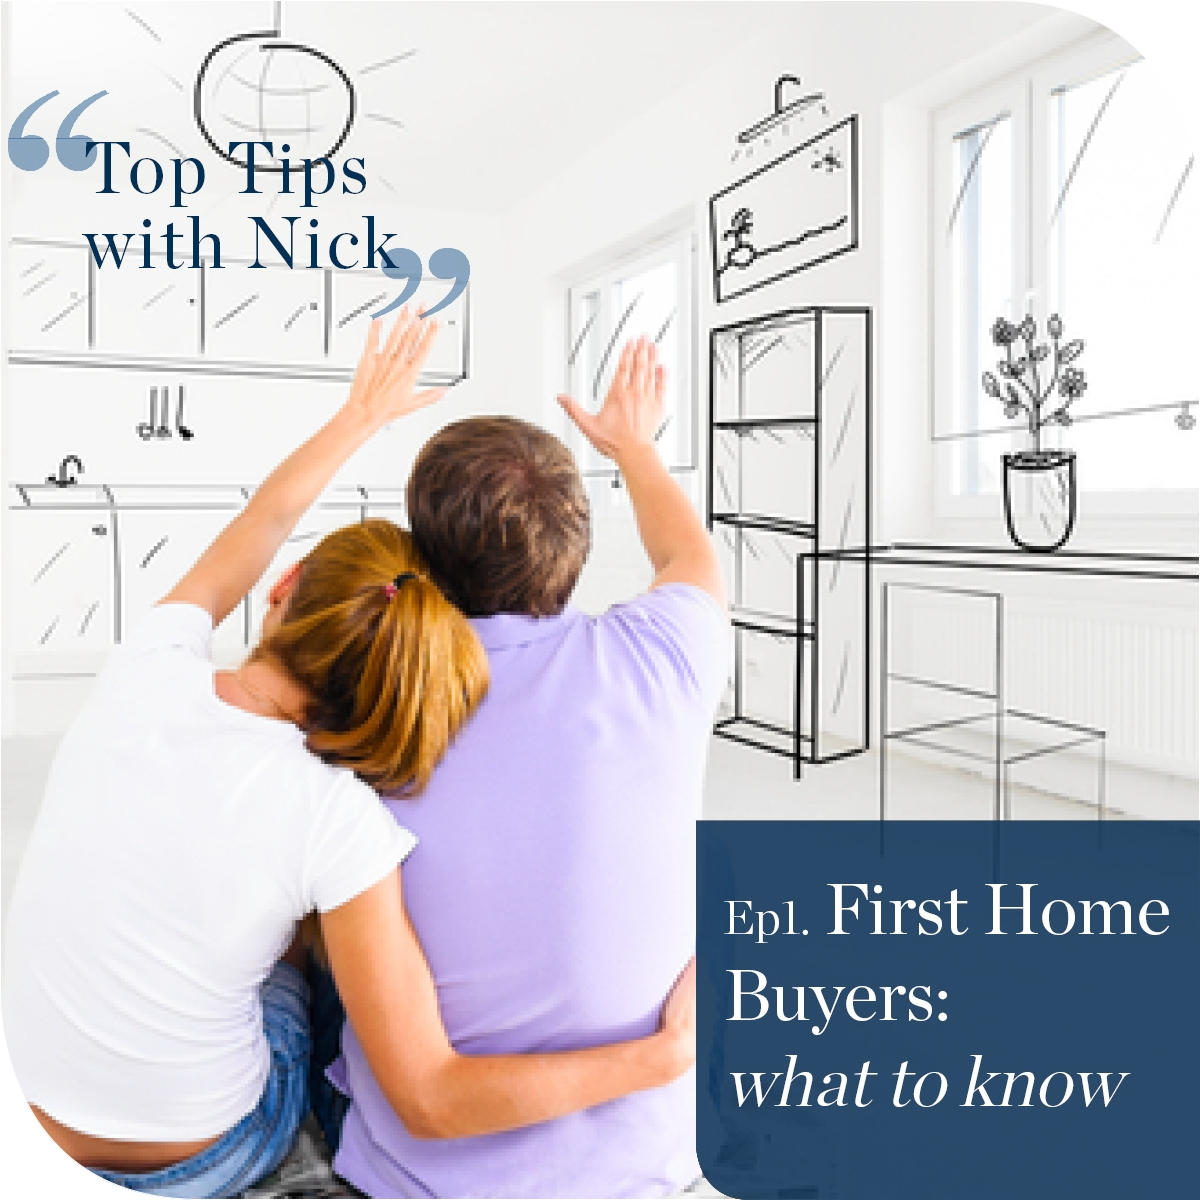 First Home Buyers – what do you need to know?